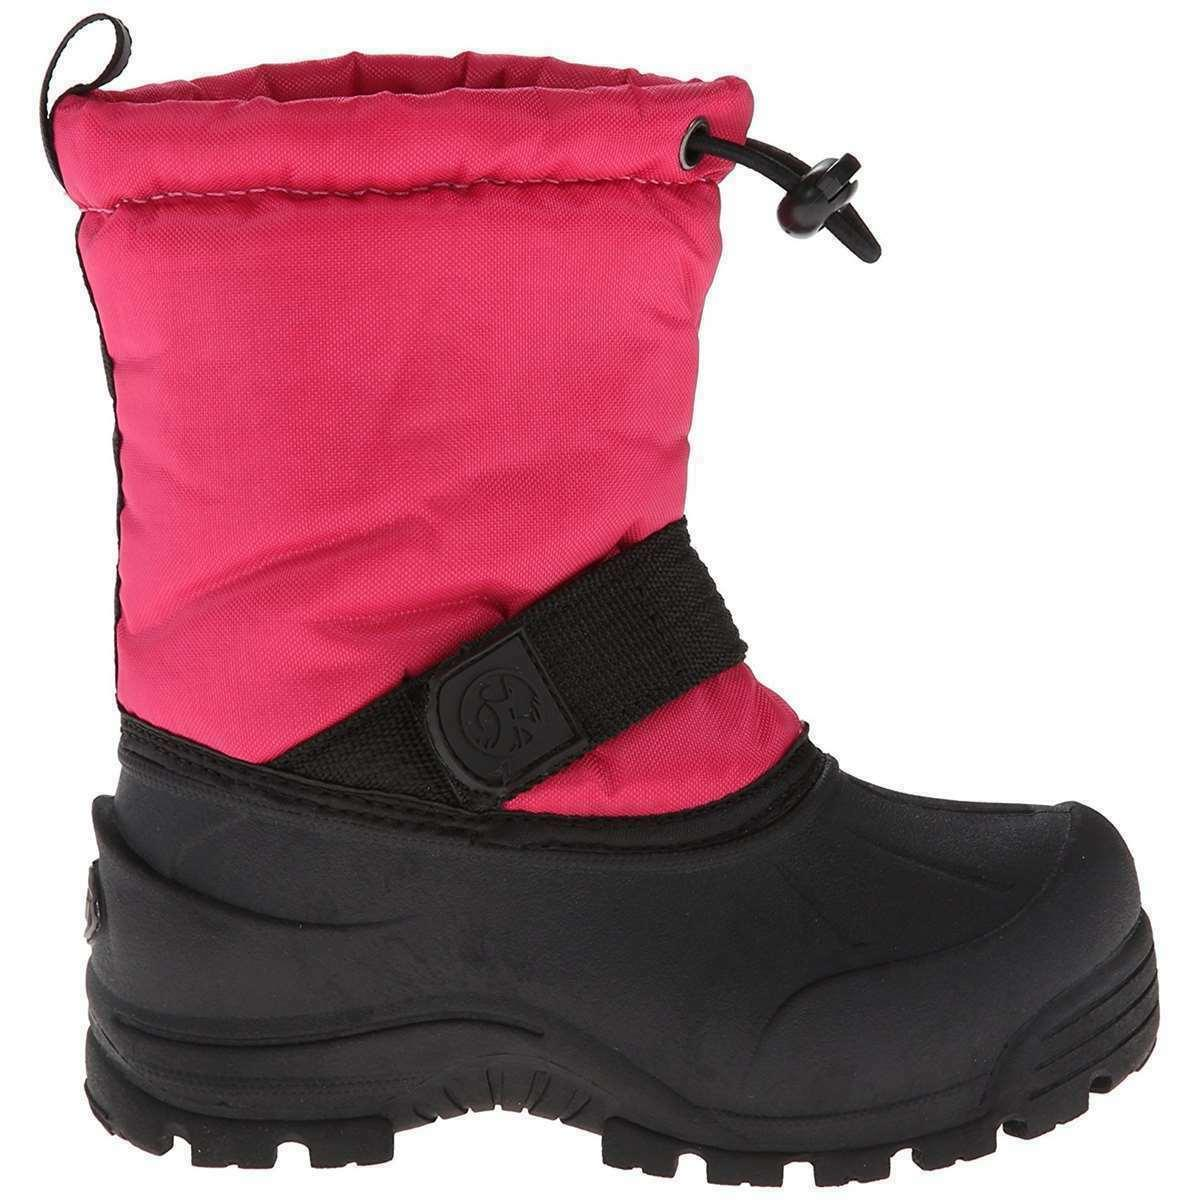 New Girls Frosty Boots M US